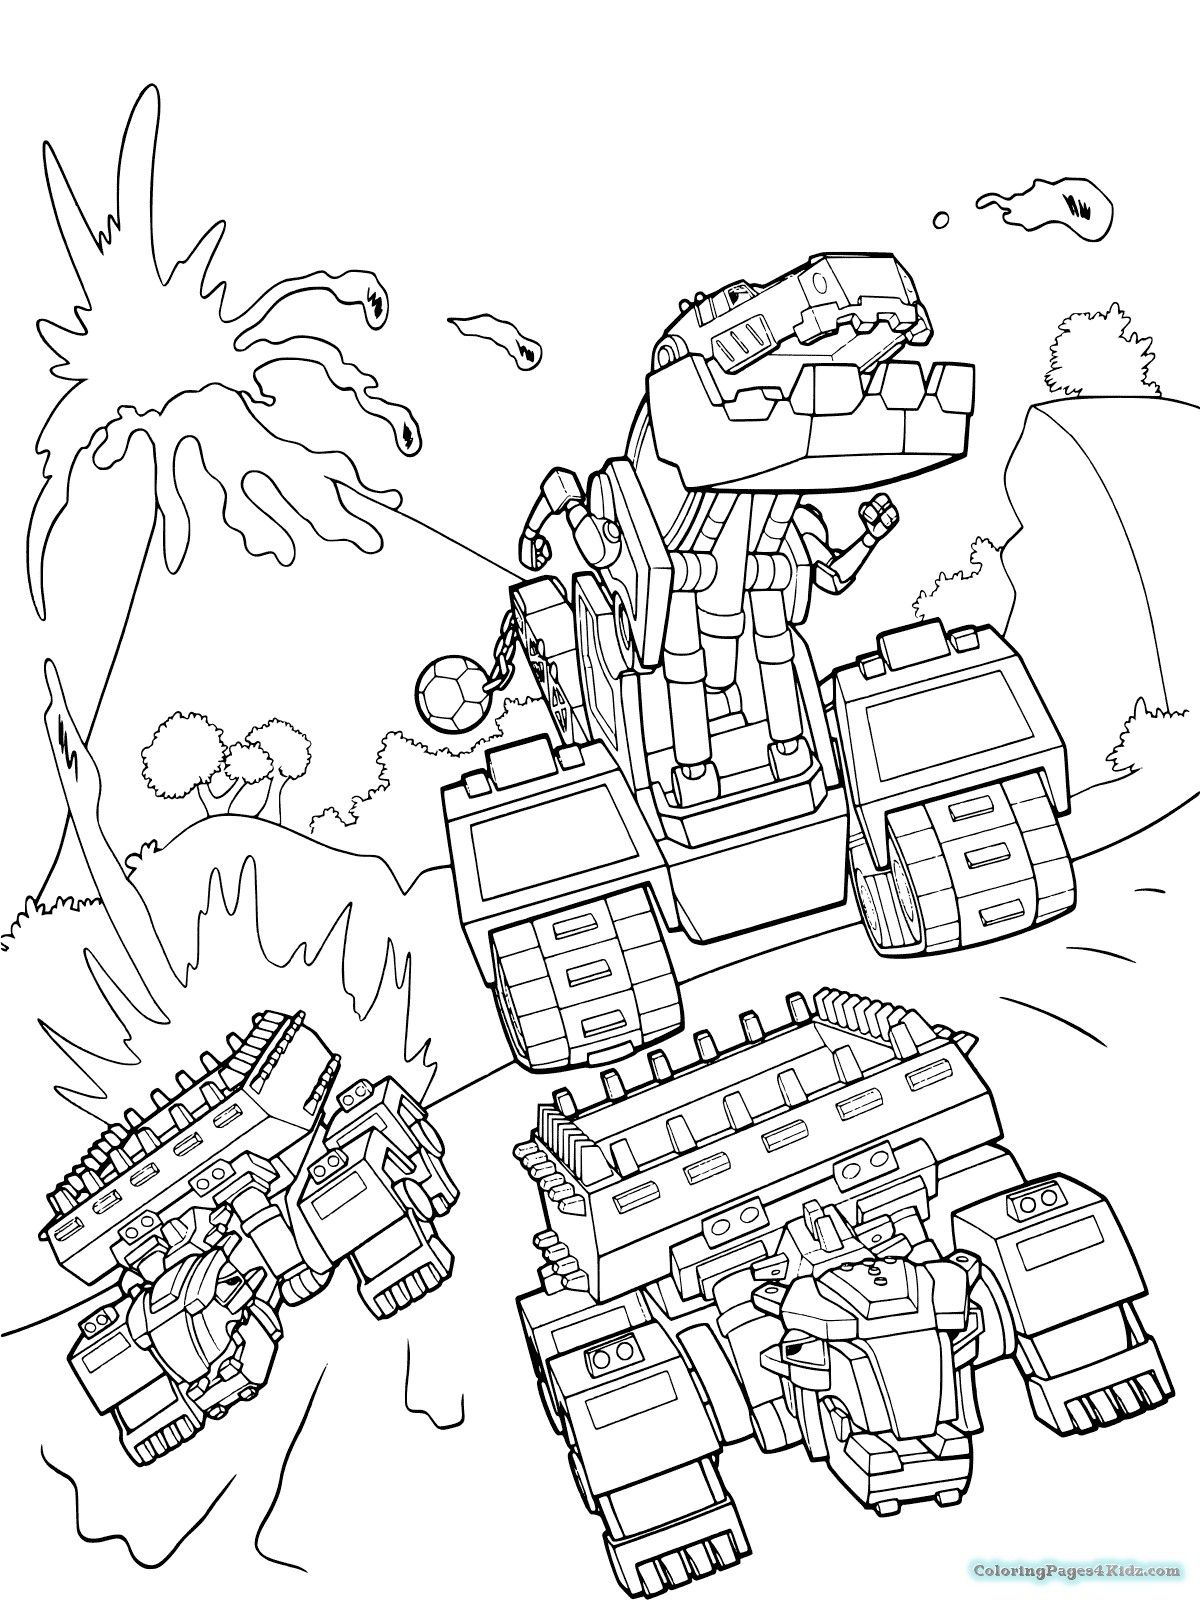 dinosaurs #coloring #pages  Dinosaur coloring pages, Star wars